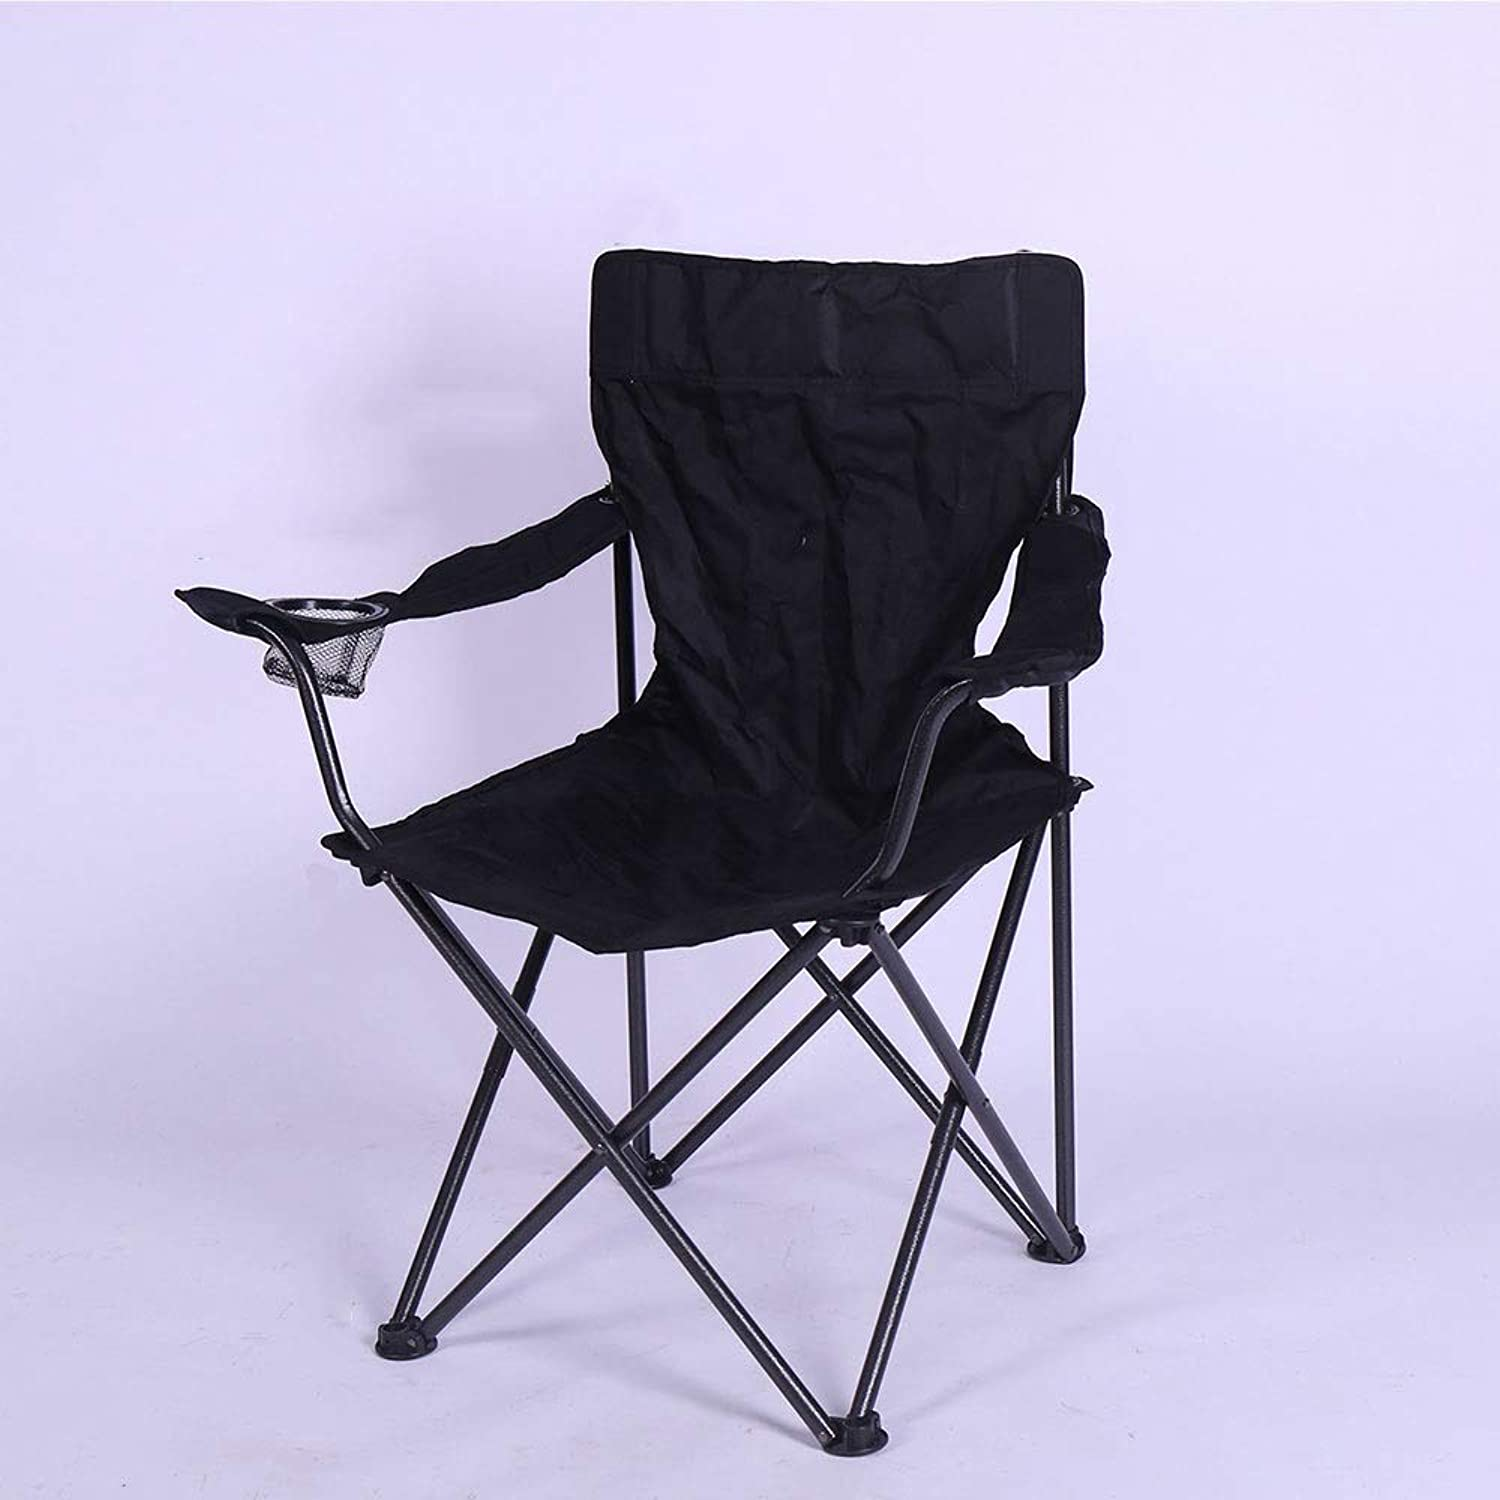 ZR Portable Camping Quad Chair Portable Folding Chair with Arm Rest Cup Holder and Carrying and Storage Bag (color   Black)